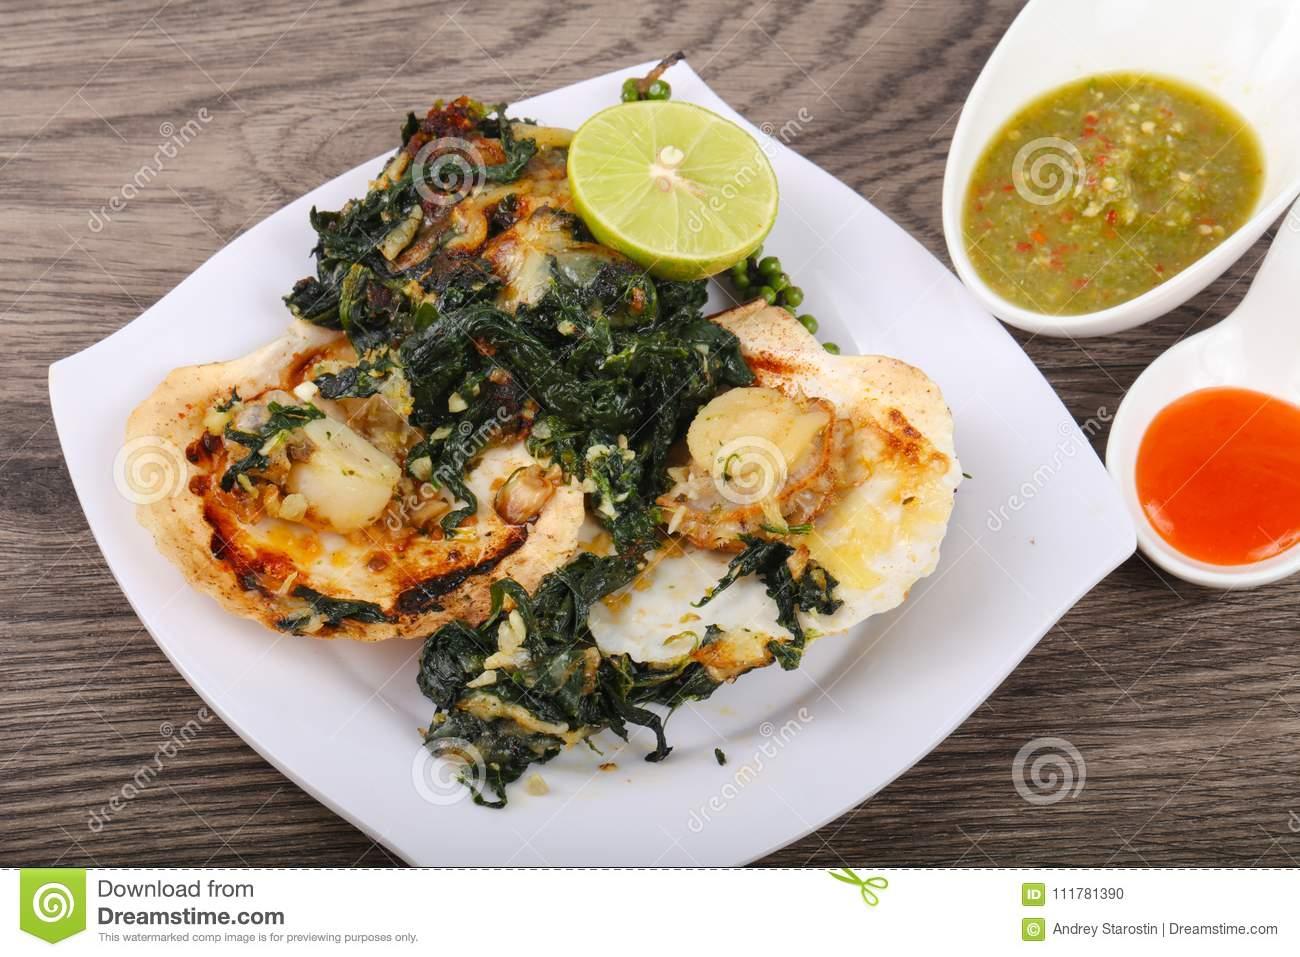 Baked scallops with spinach